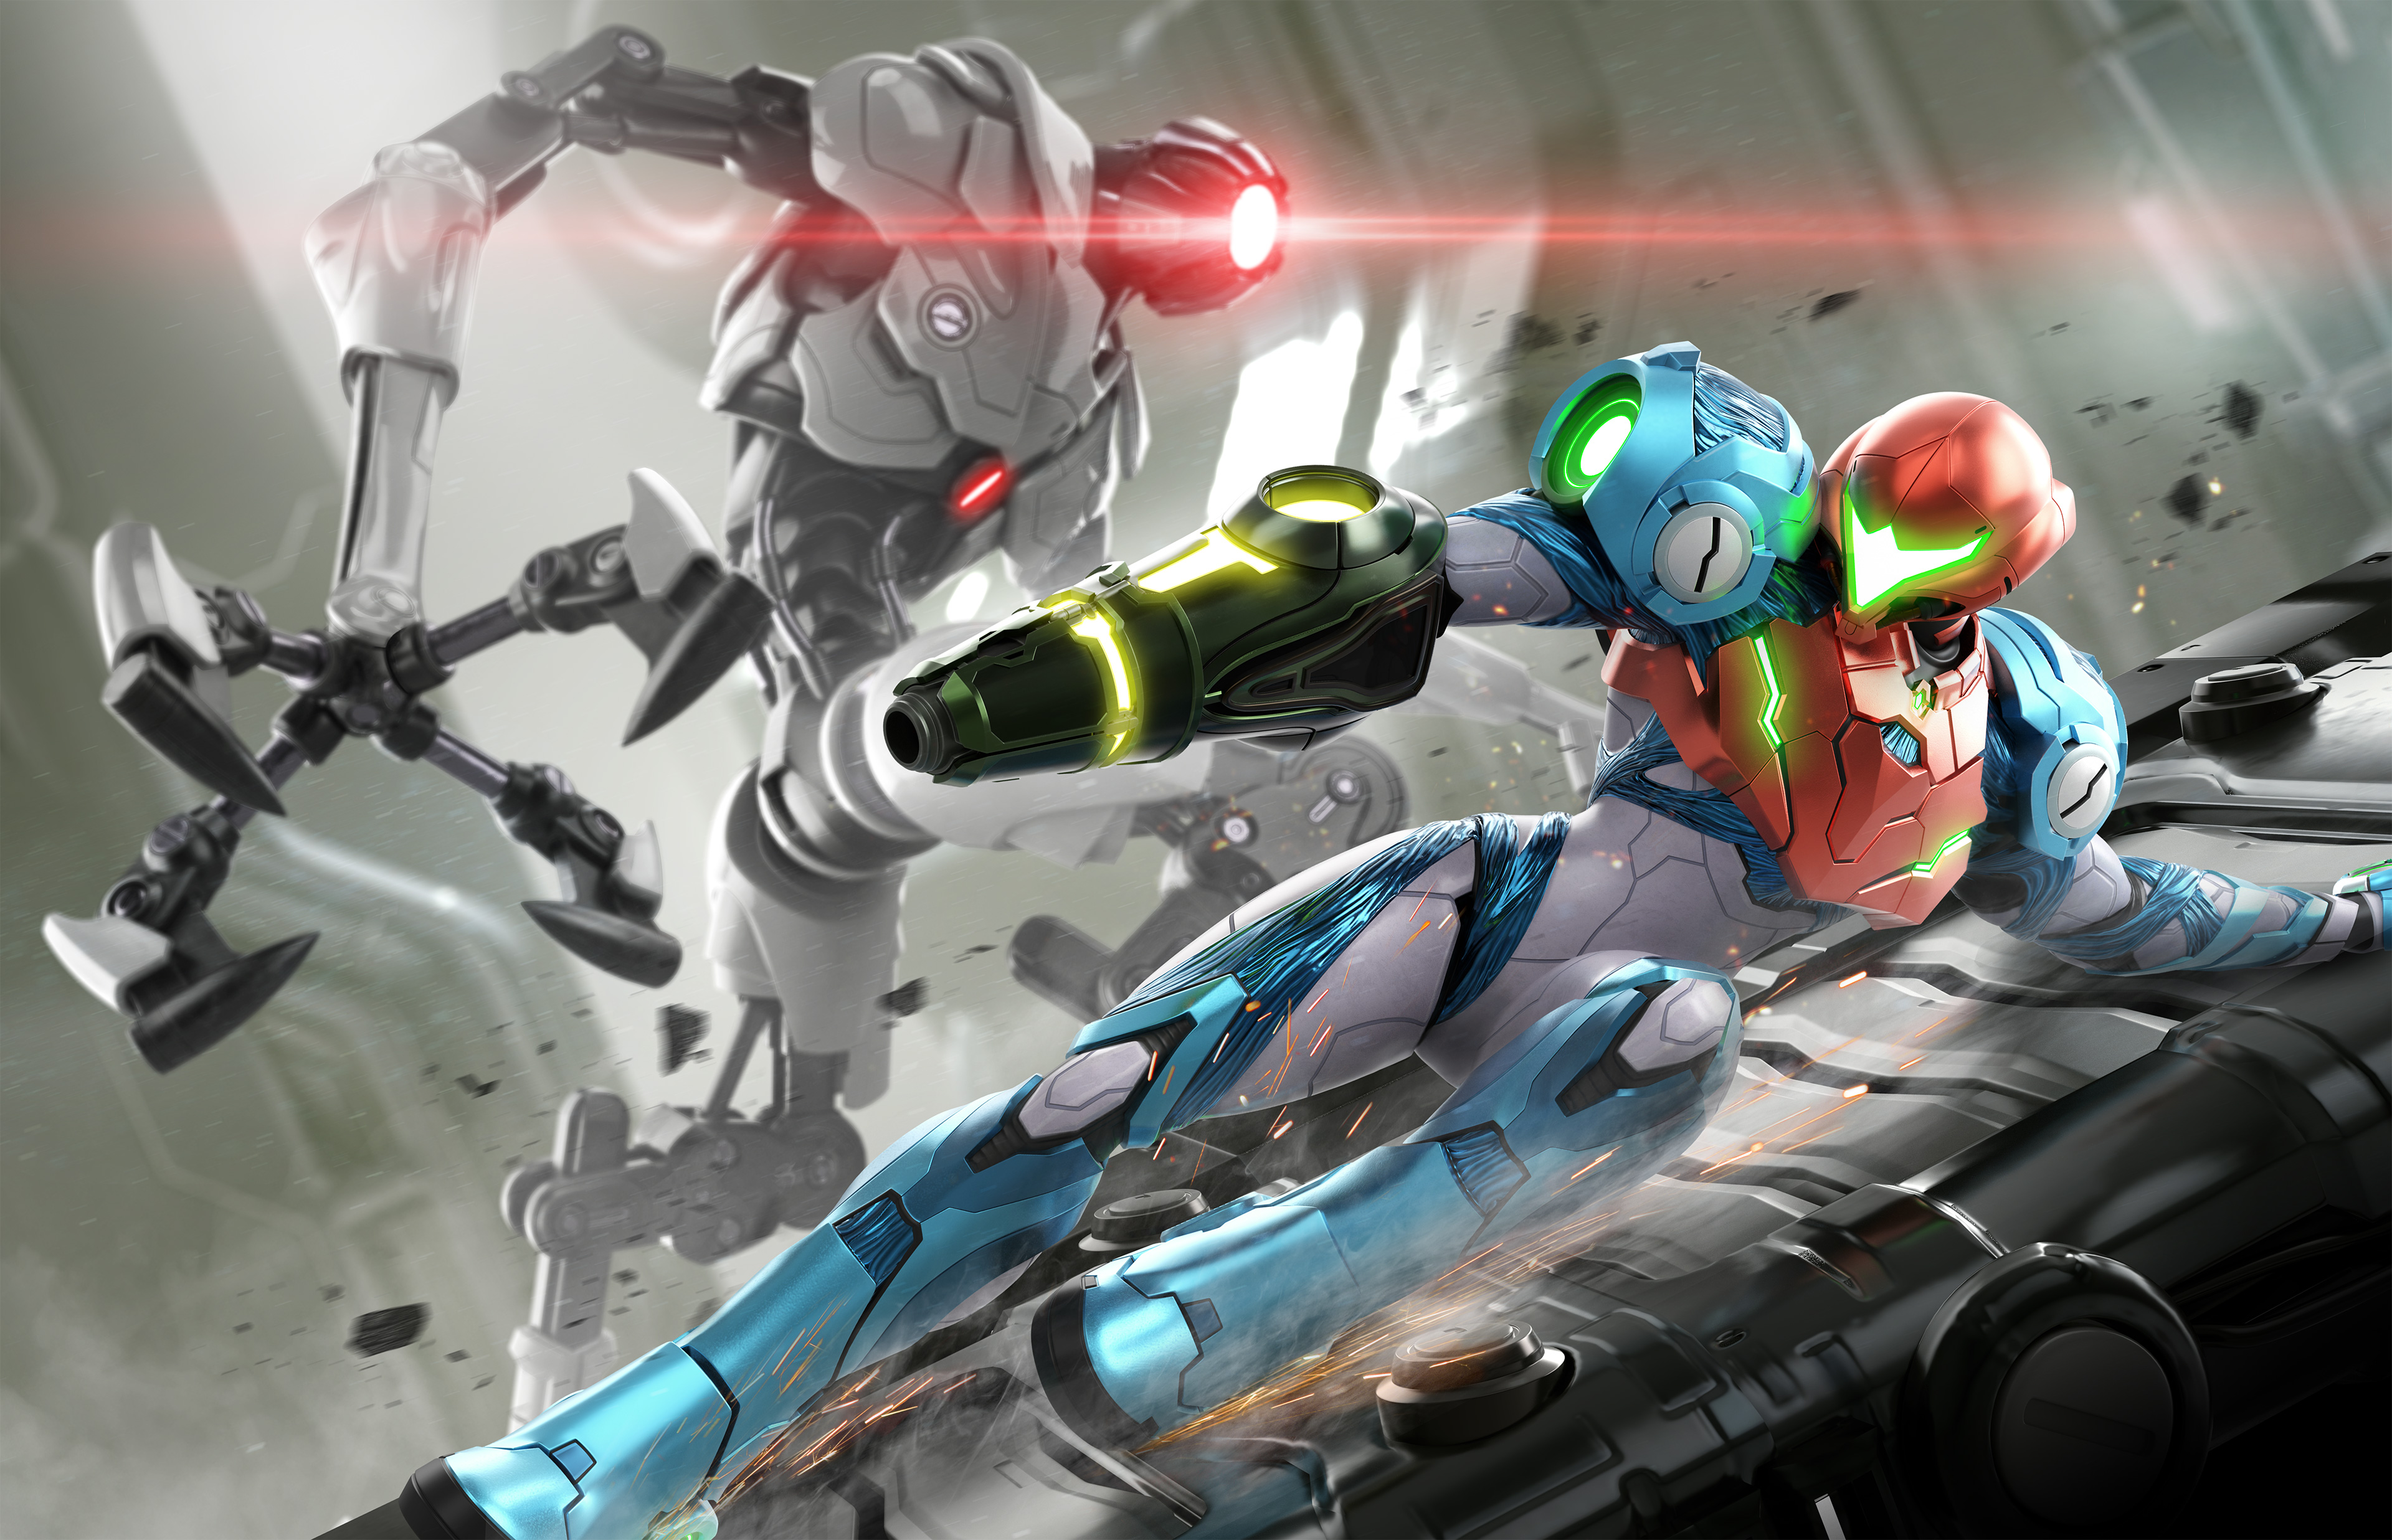 artwork of Samus Aran sliding down a ramp with an EMMI robot in the background in Metroid Dread